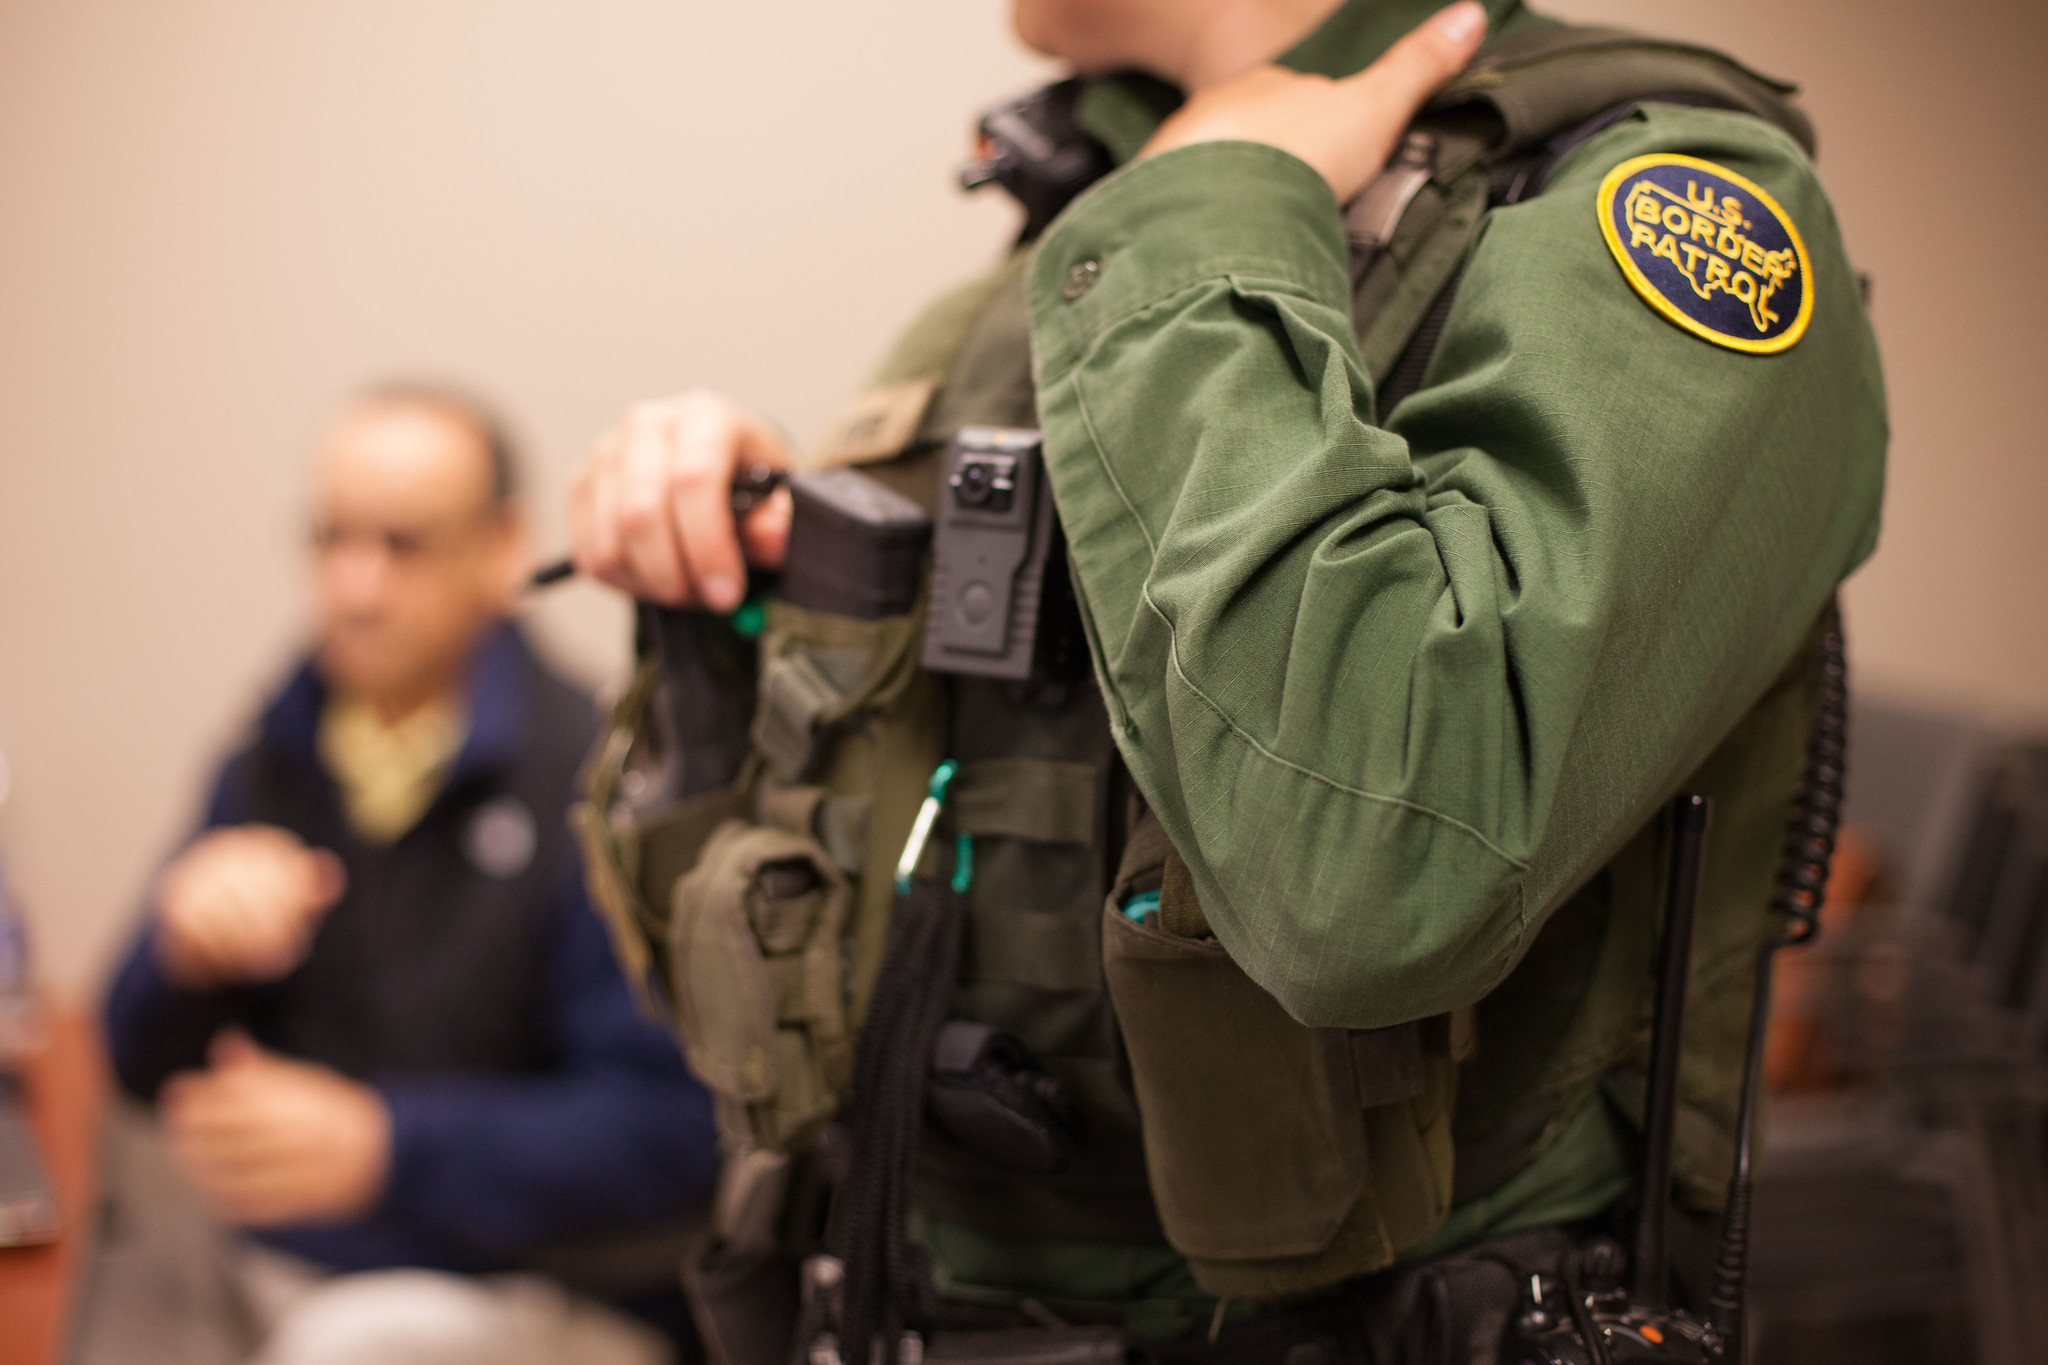 A photograph of CBP officer in an office room.